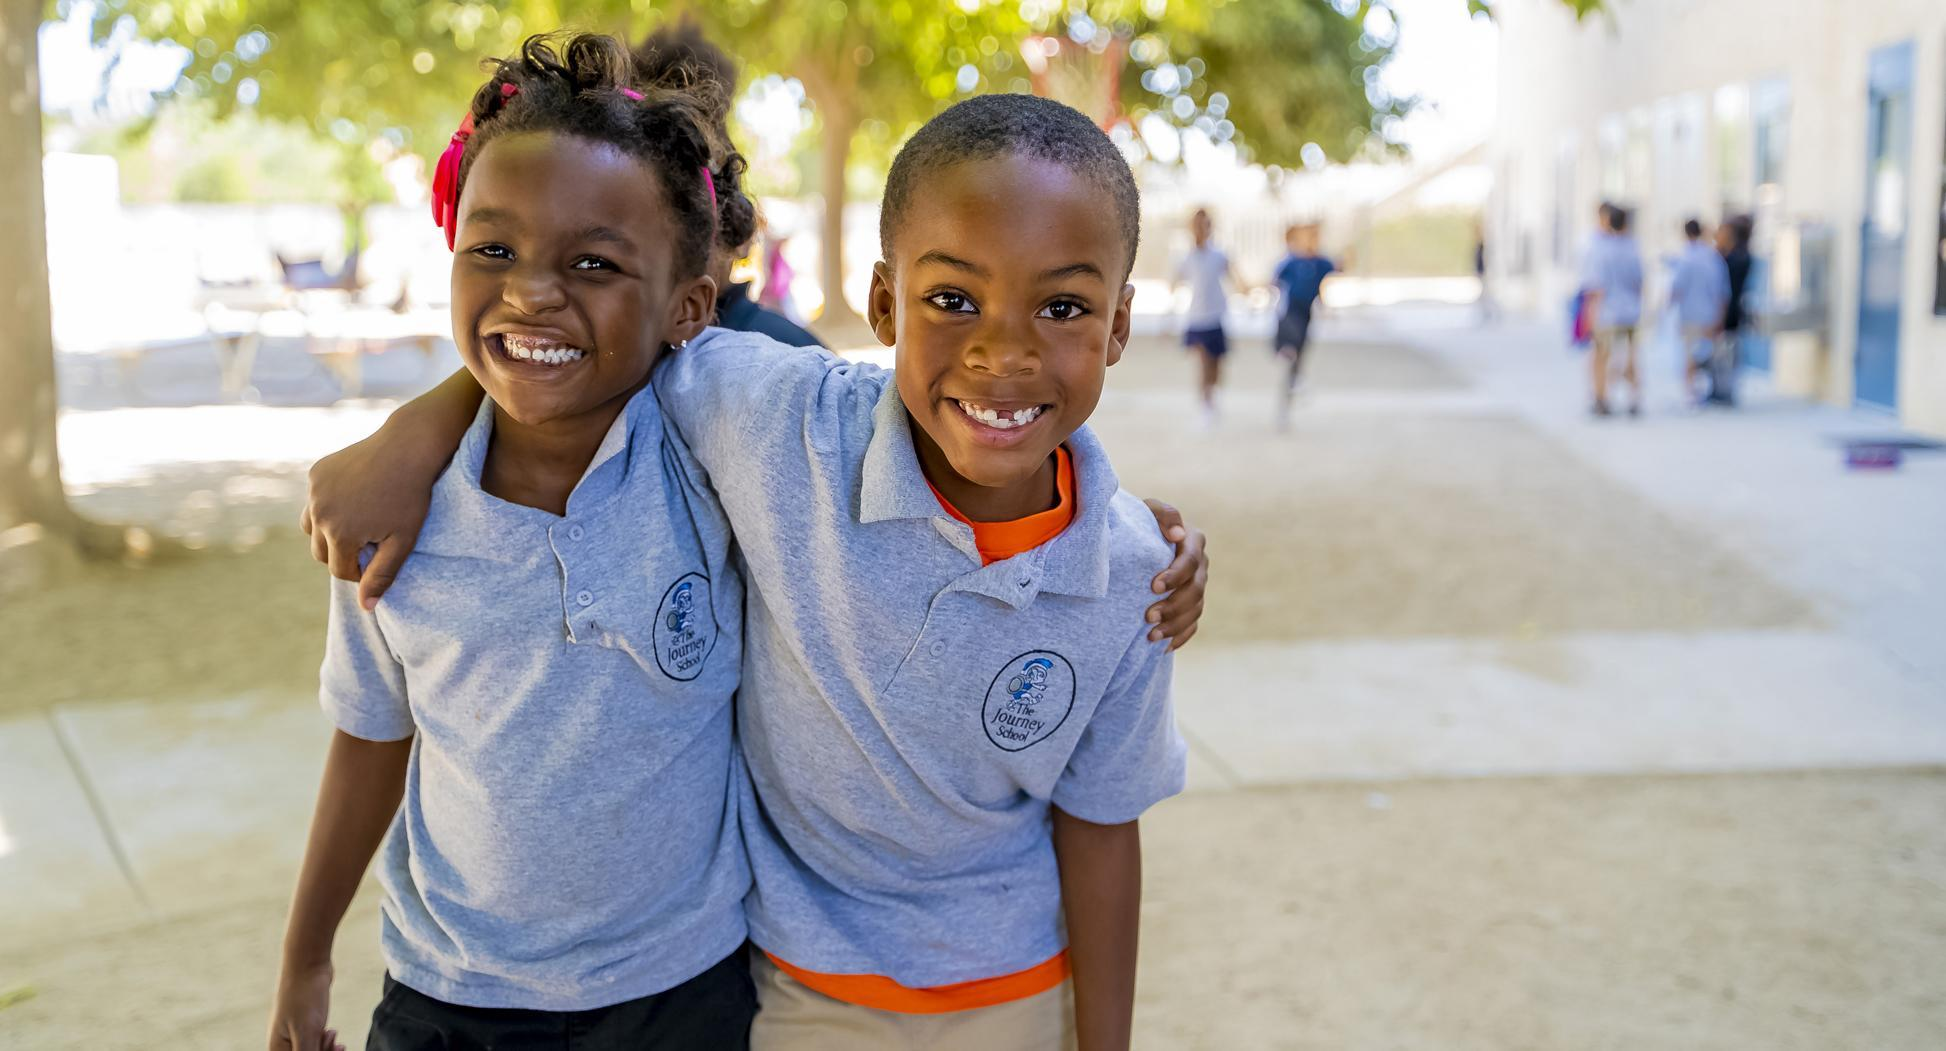 Two students at The Journey School giving a side hug to each other on the school yard, and smiling at the camera. Both students are wearing school uniforms.